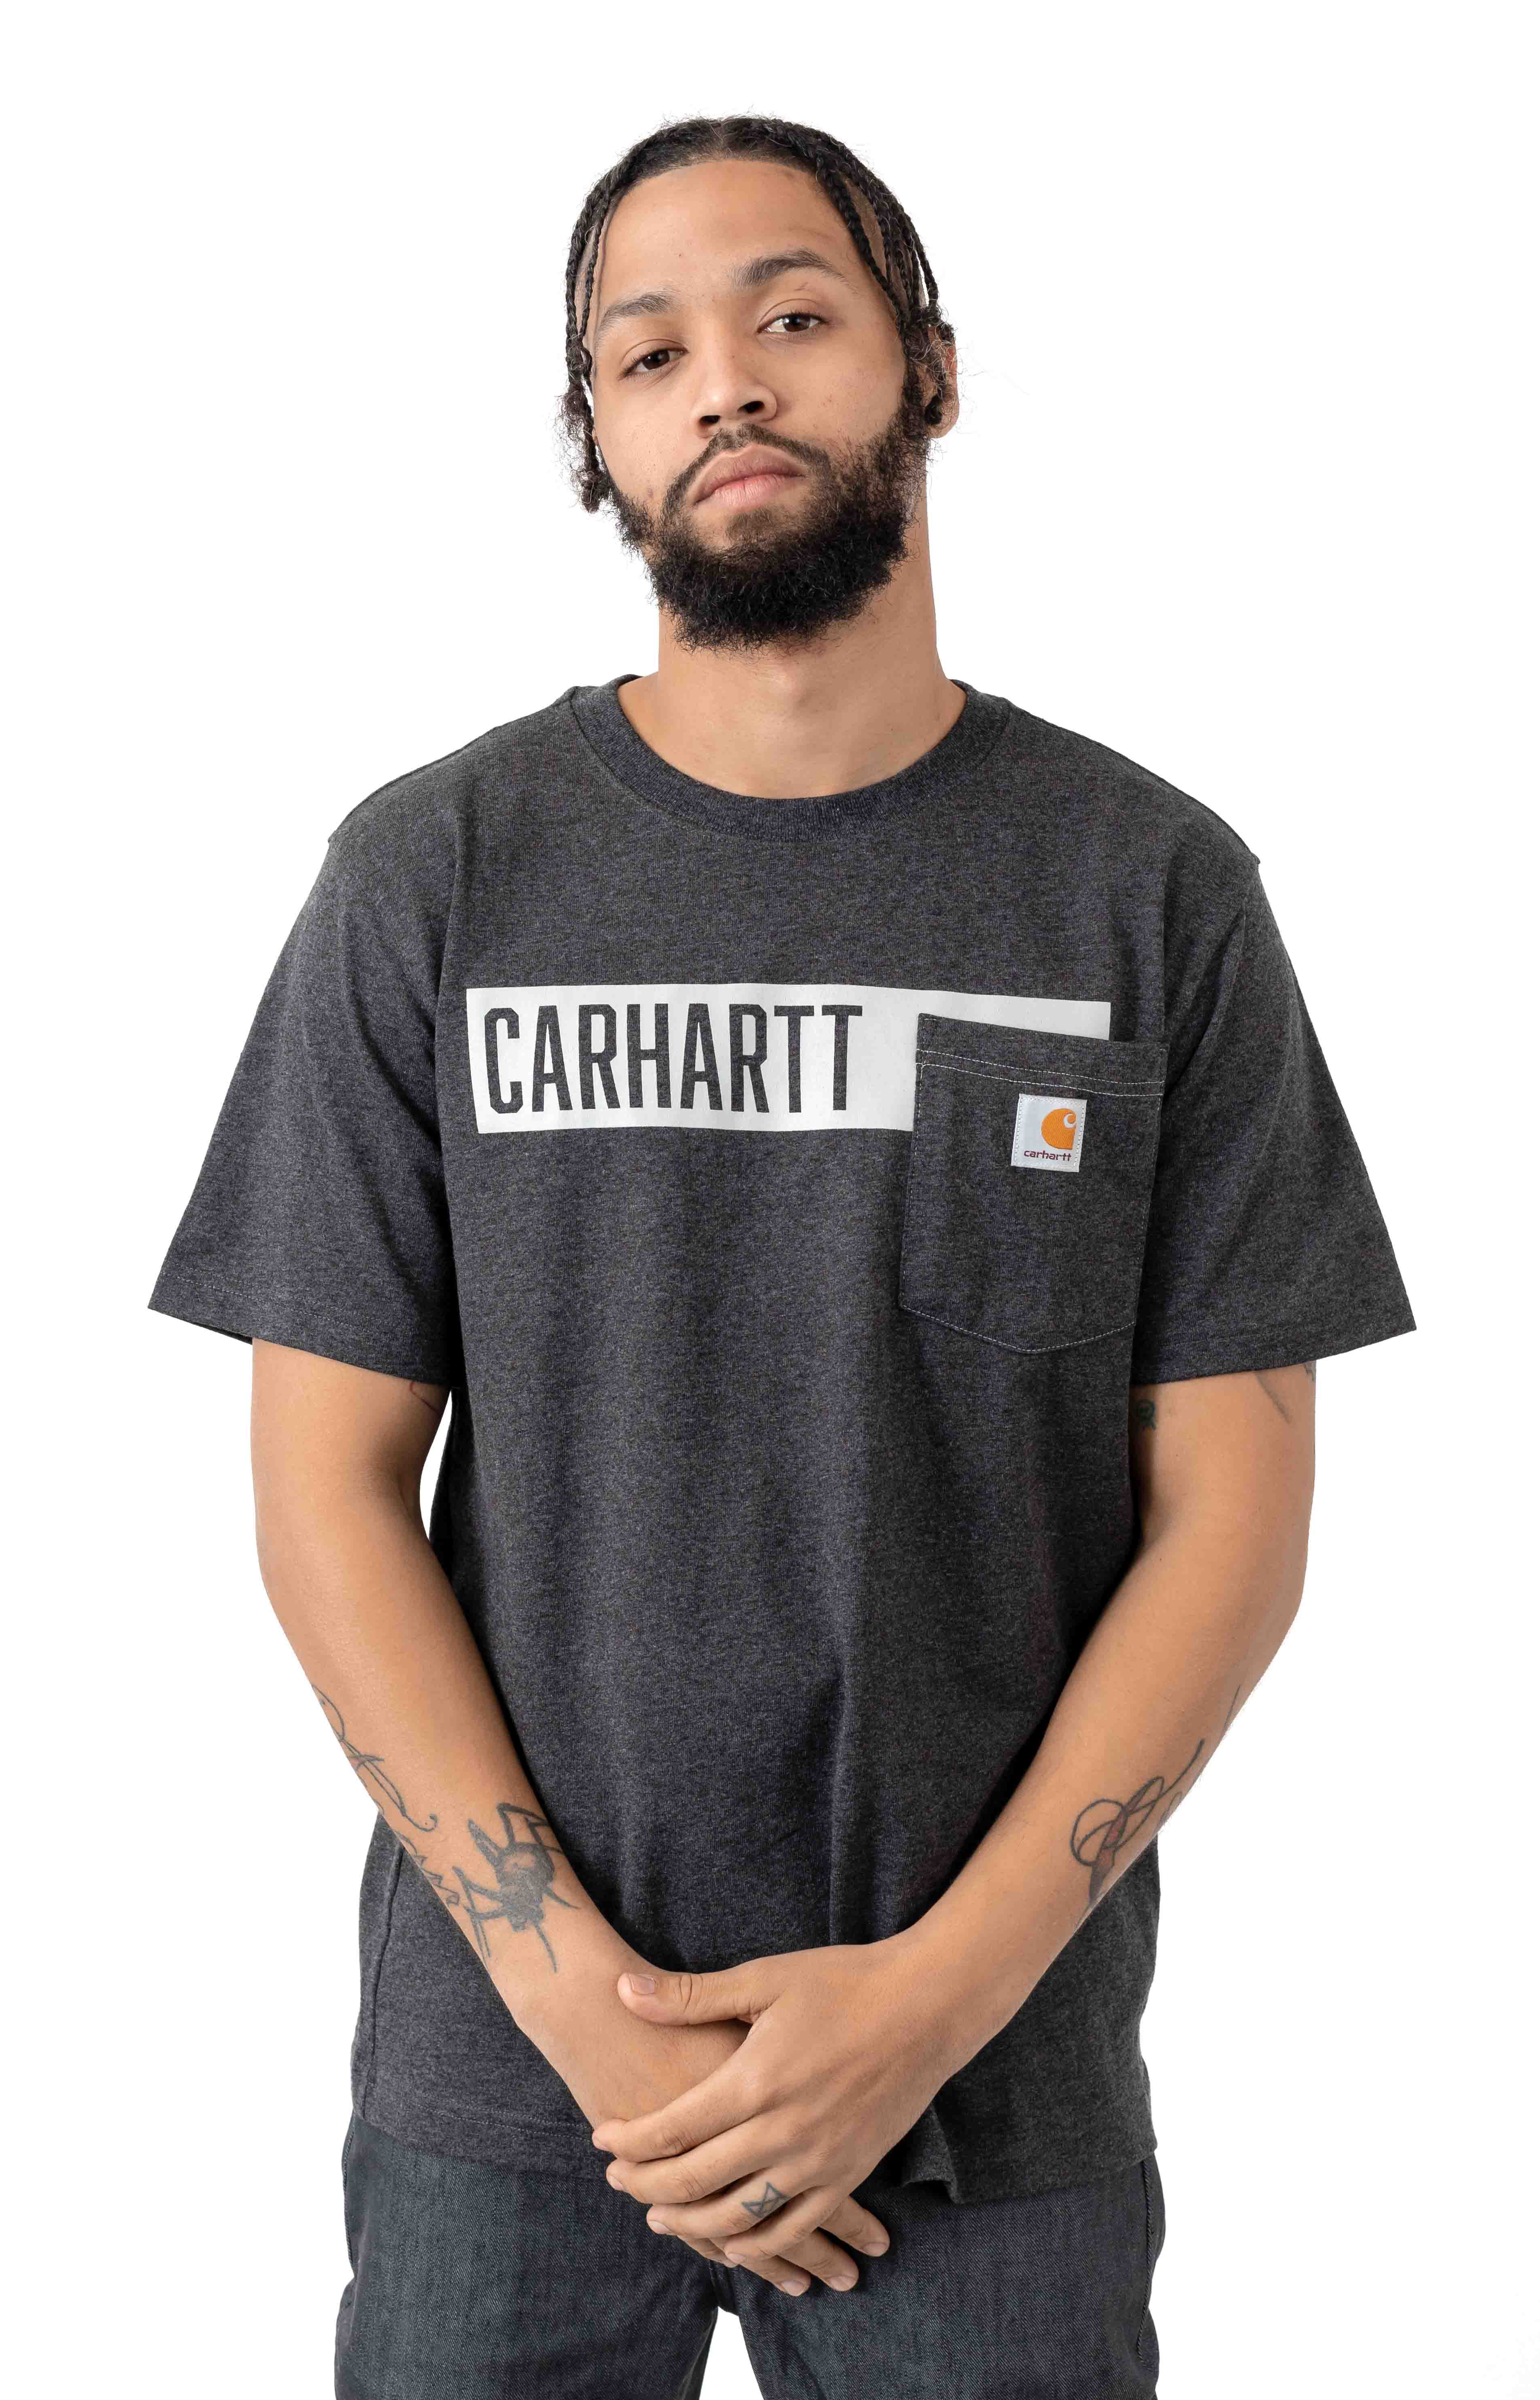 (104180) TK178-M Relaxed Fit HW Pocket Stripe Graphic T-Shirt - Carbon Heather